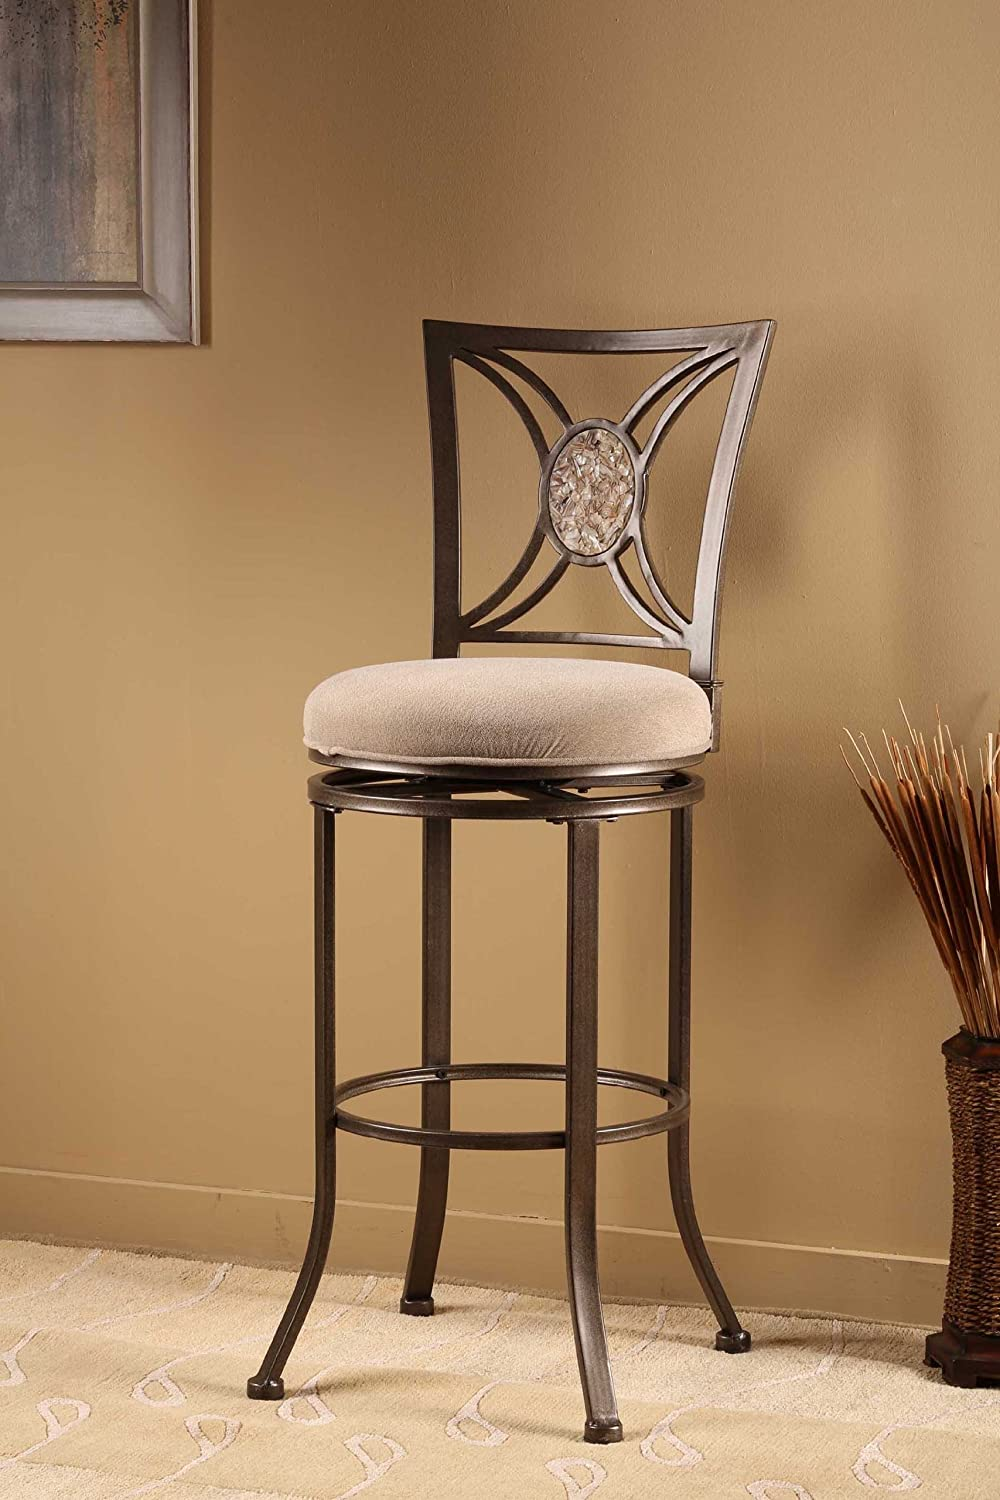 & Amazon.com: Swivel Stool (26 in. Counter Height): Kitchen u0026 Dining islam-shia.org